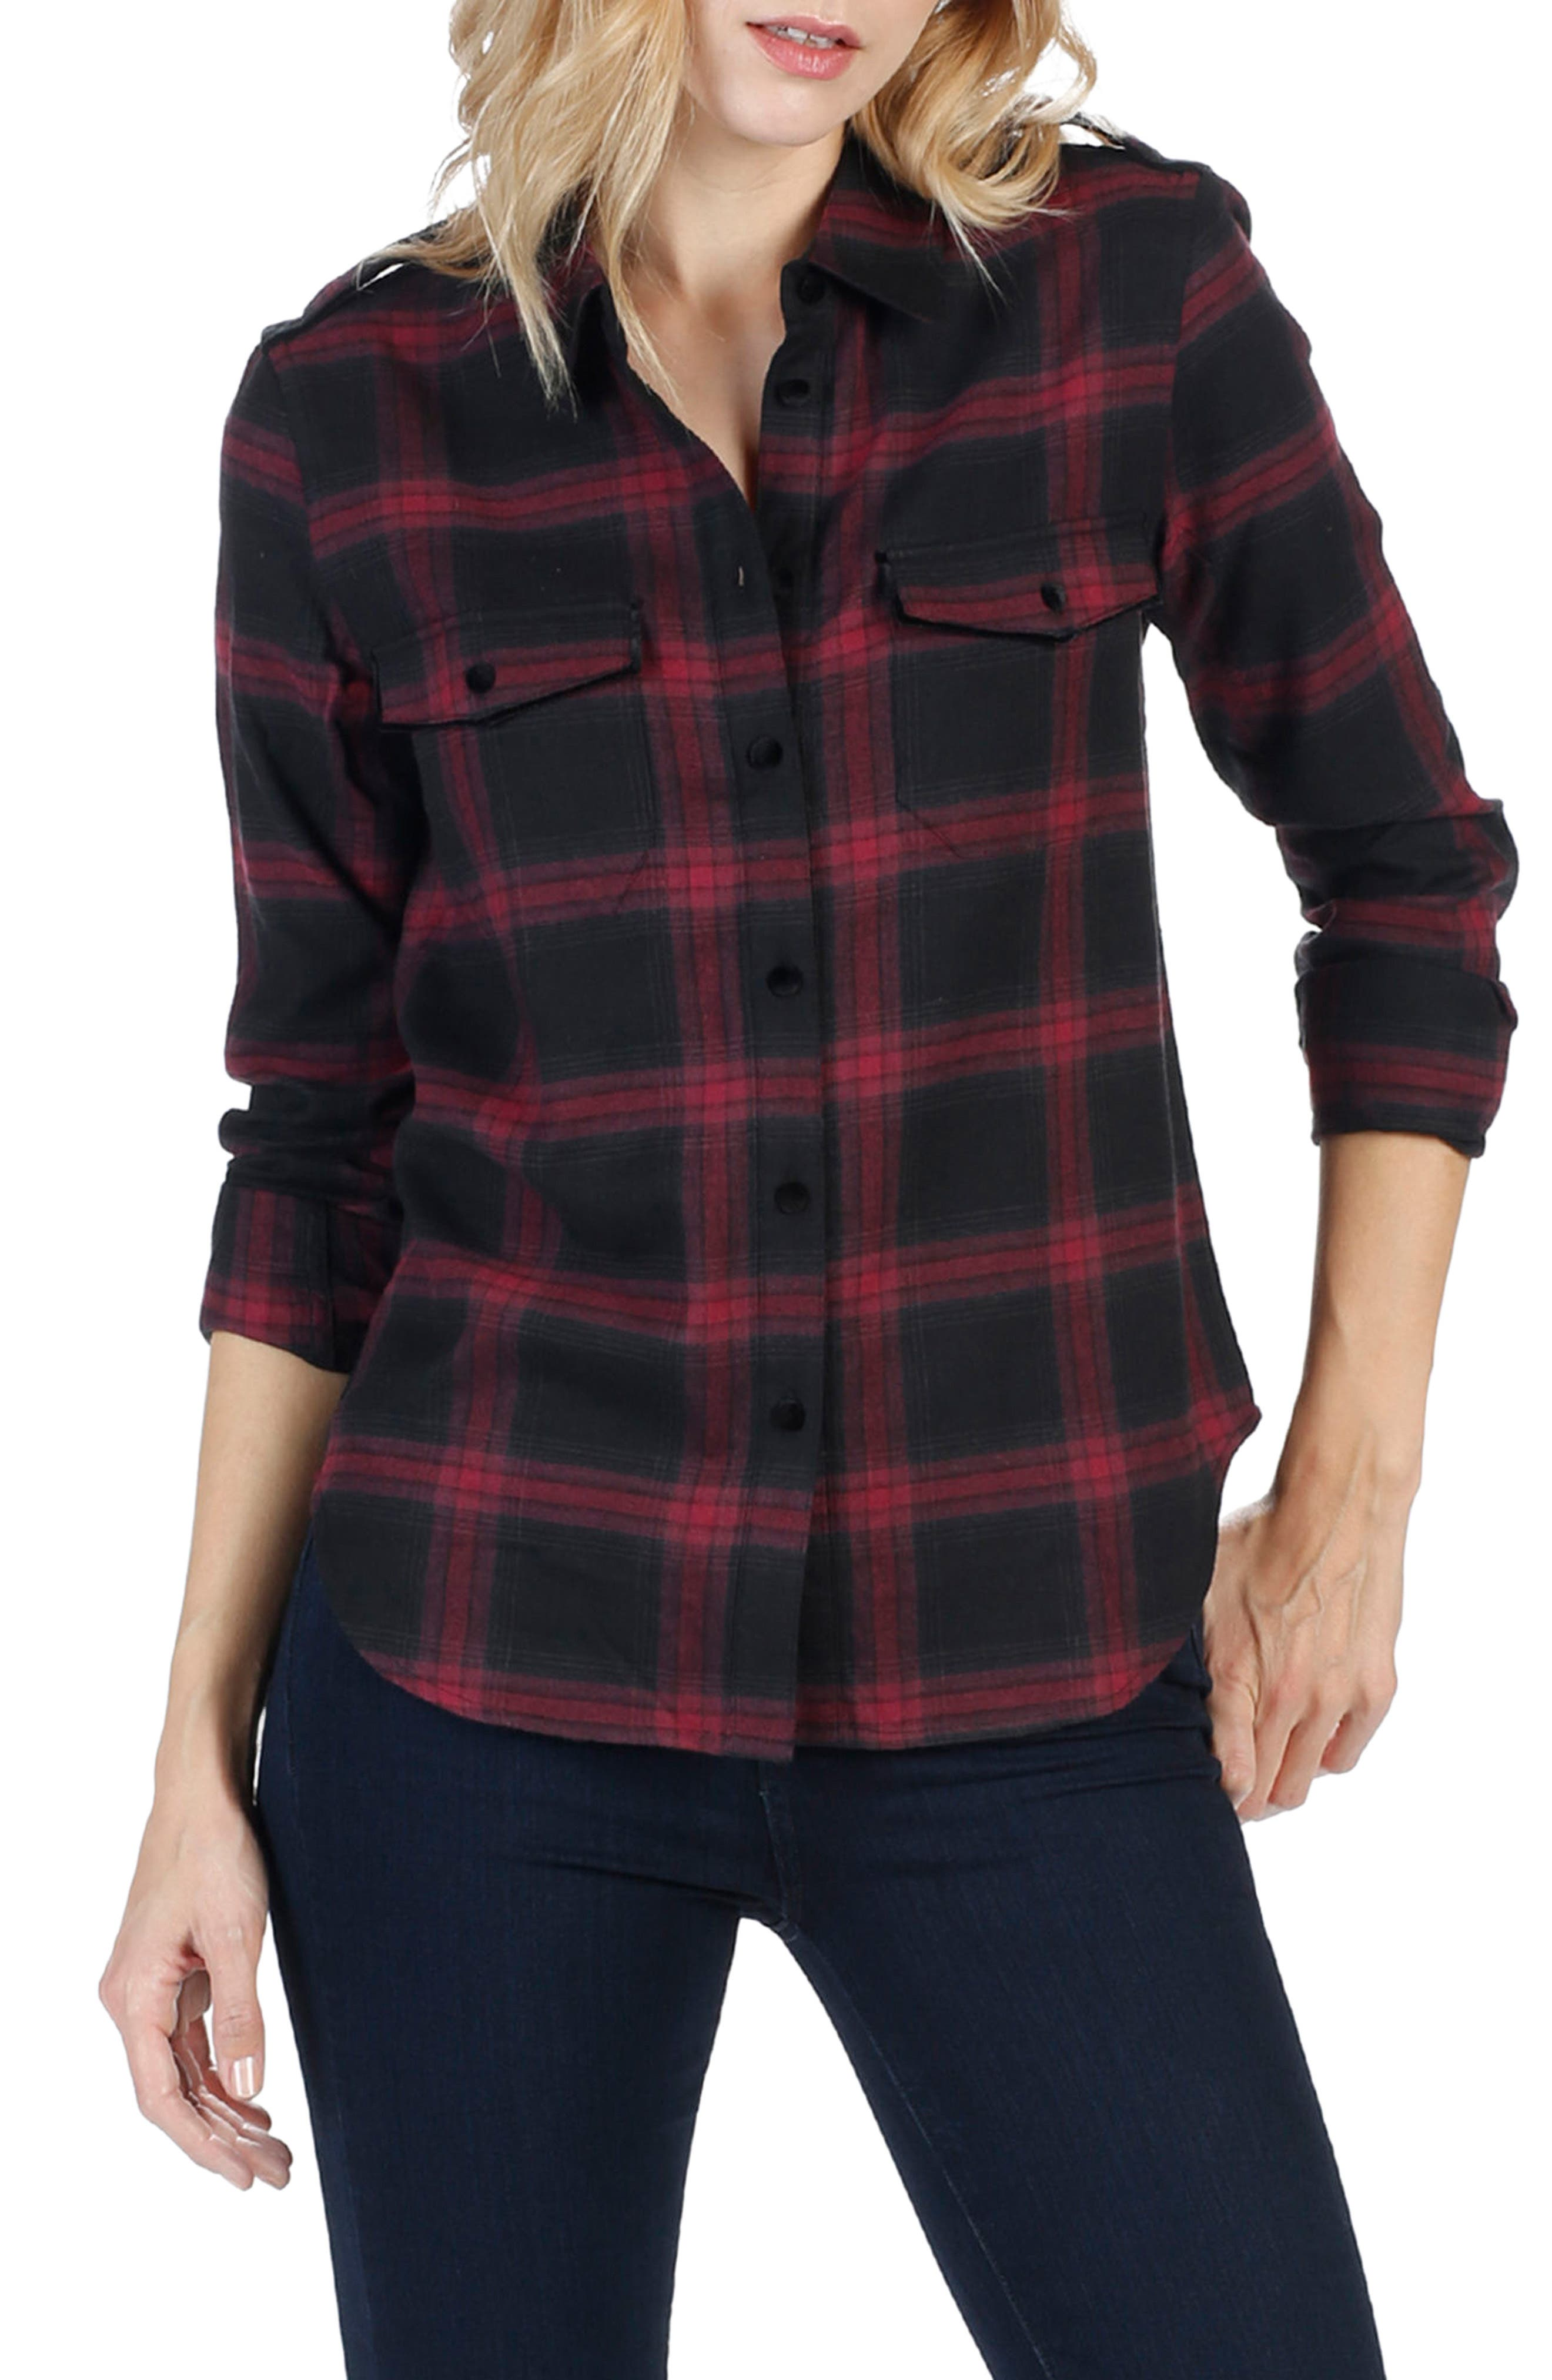 Adilene Plaid Shirt,                         Main,                         color, True Black/ Dark Magenta